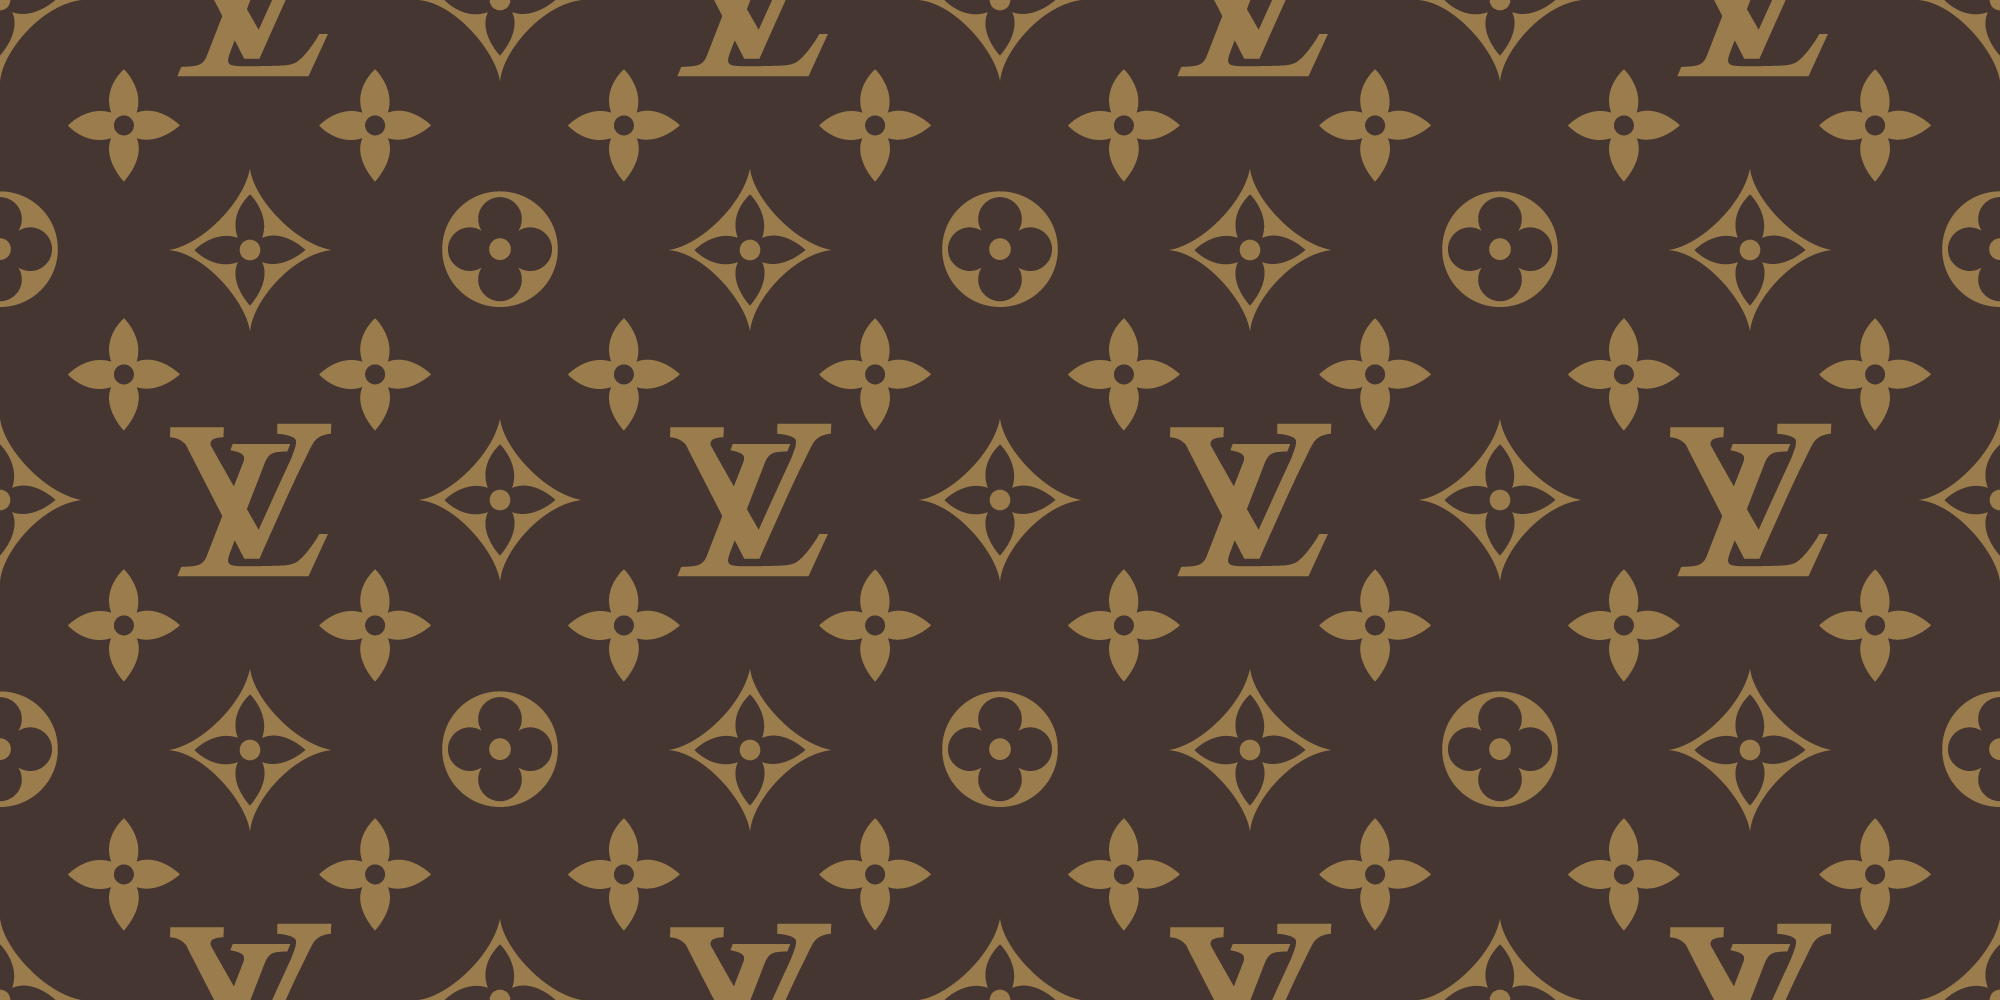 Louis Vuitton Device Background There Are Not Many Good Ones So Here Is A High Q In 2020 Louis Vuitton Background Louis Vuitton Pattern Louis Vuitton Iphone Wallpaper